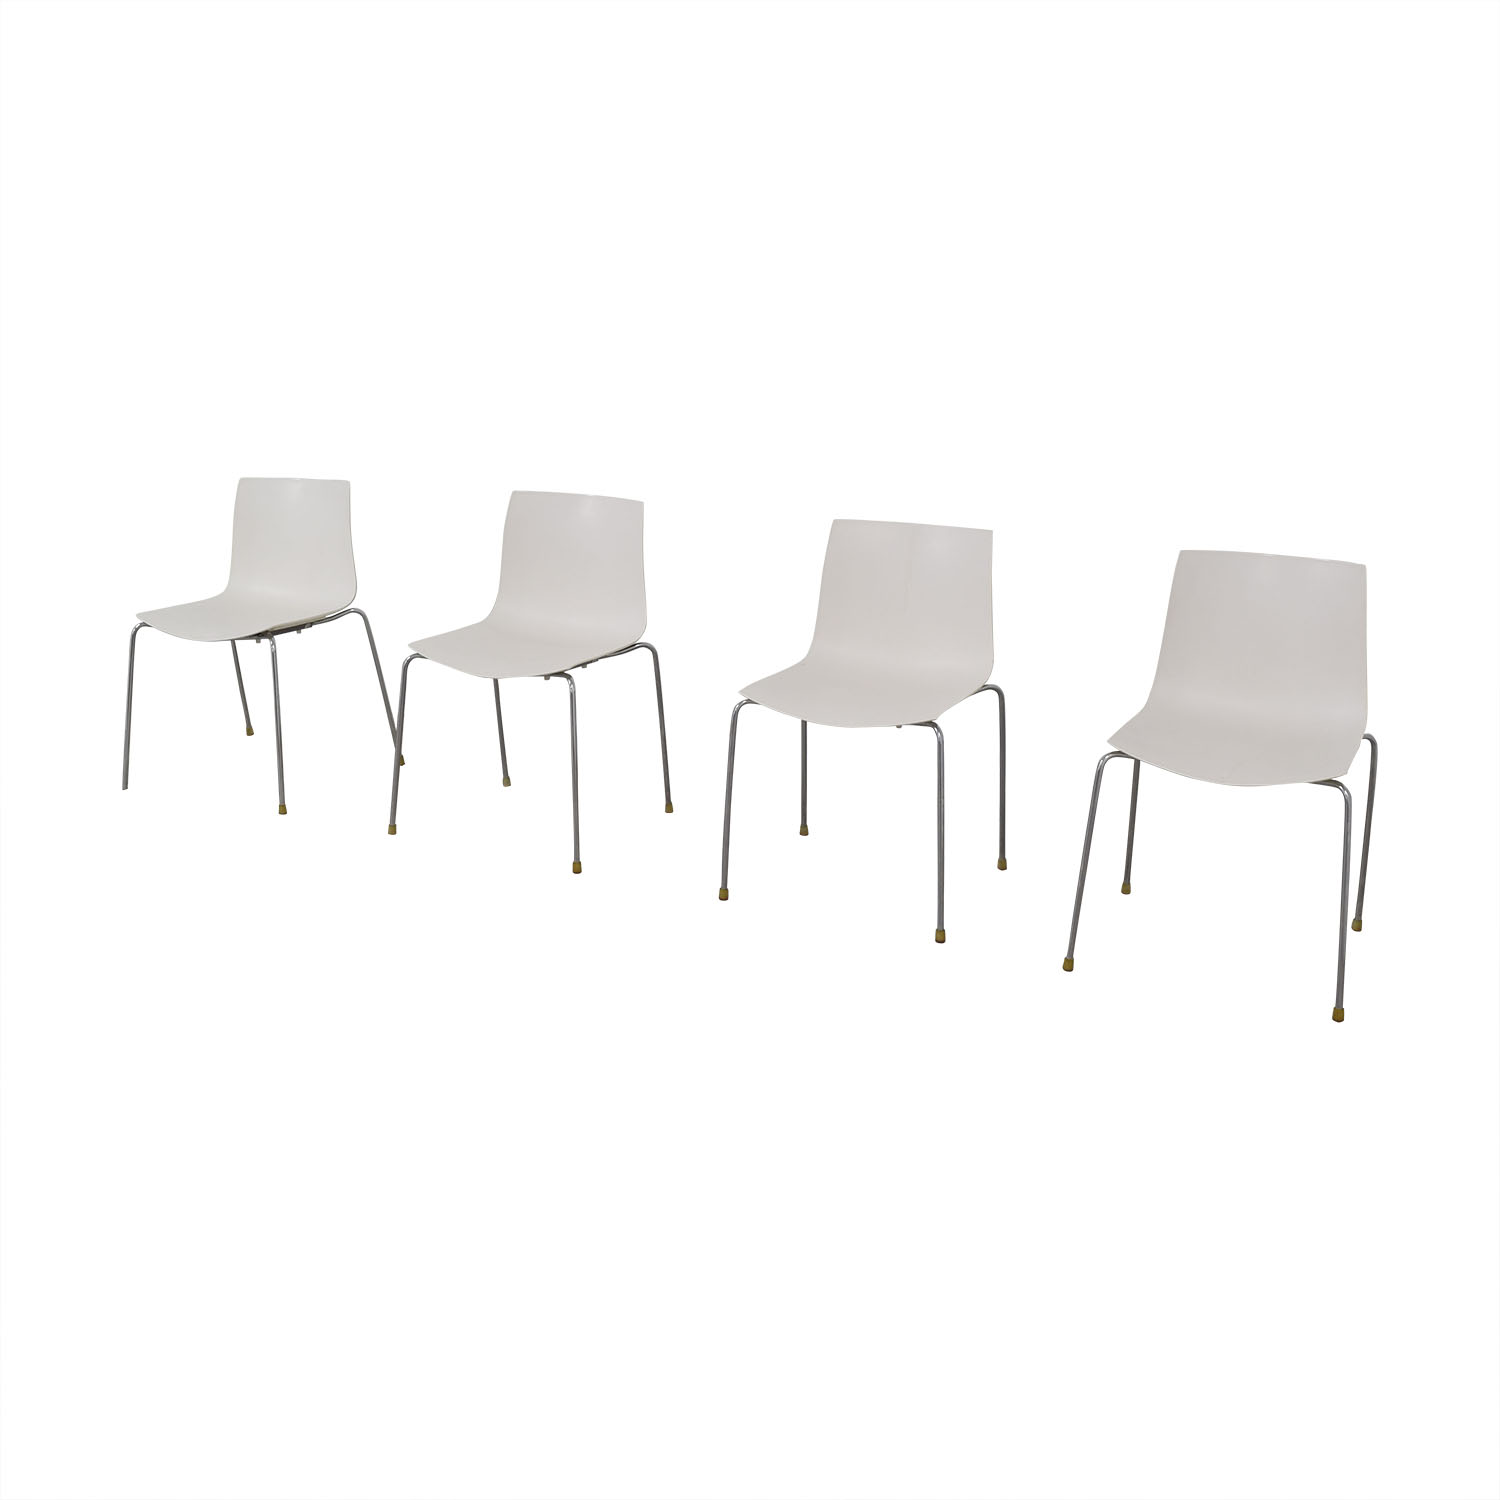 "Arper ""Catifa 46"" Chairs / Chairs"